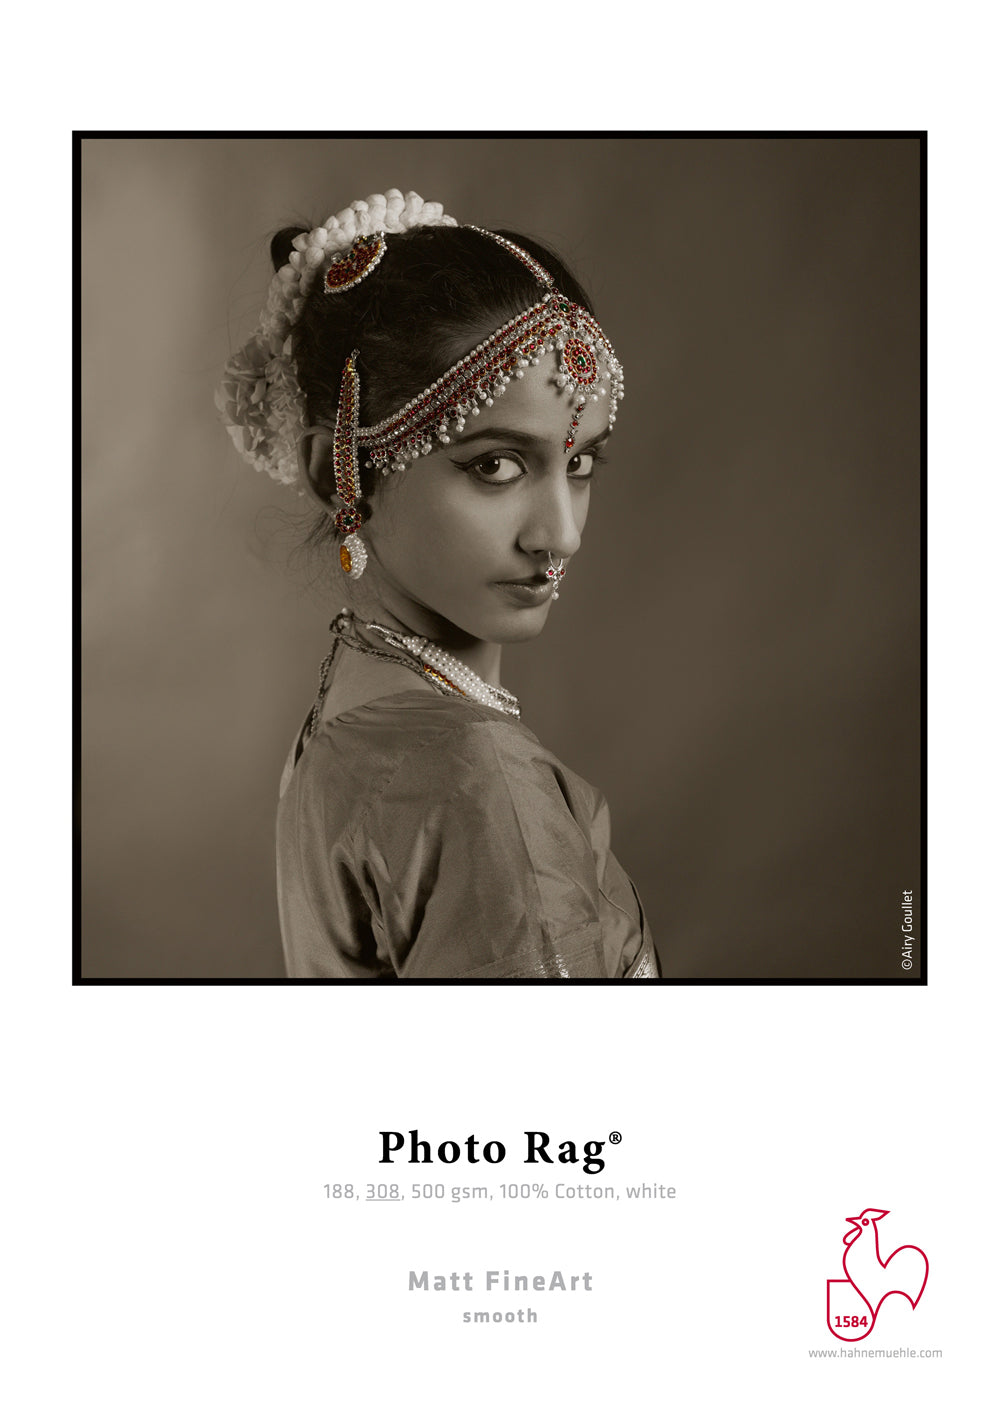 Hahnemühle Photo Rag 188gsm